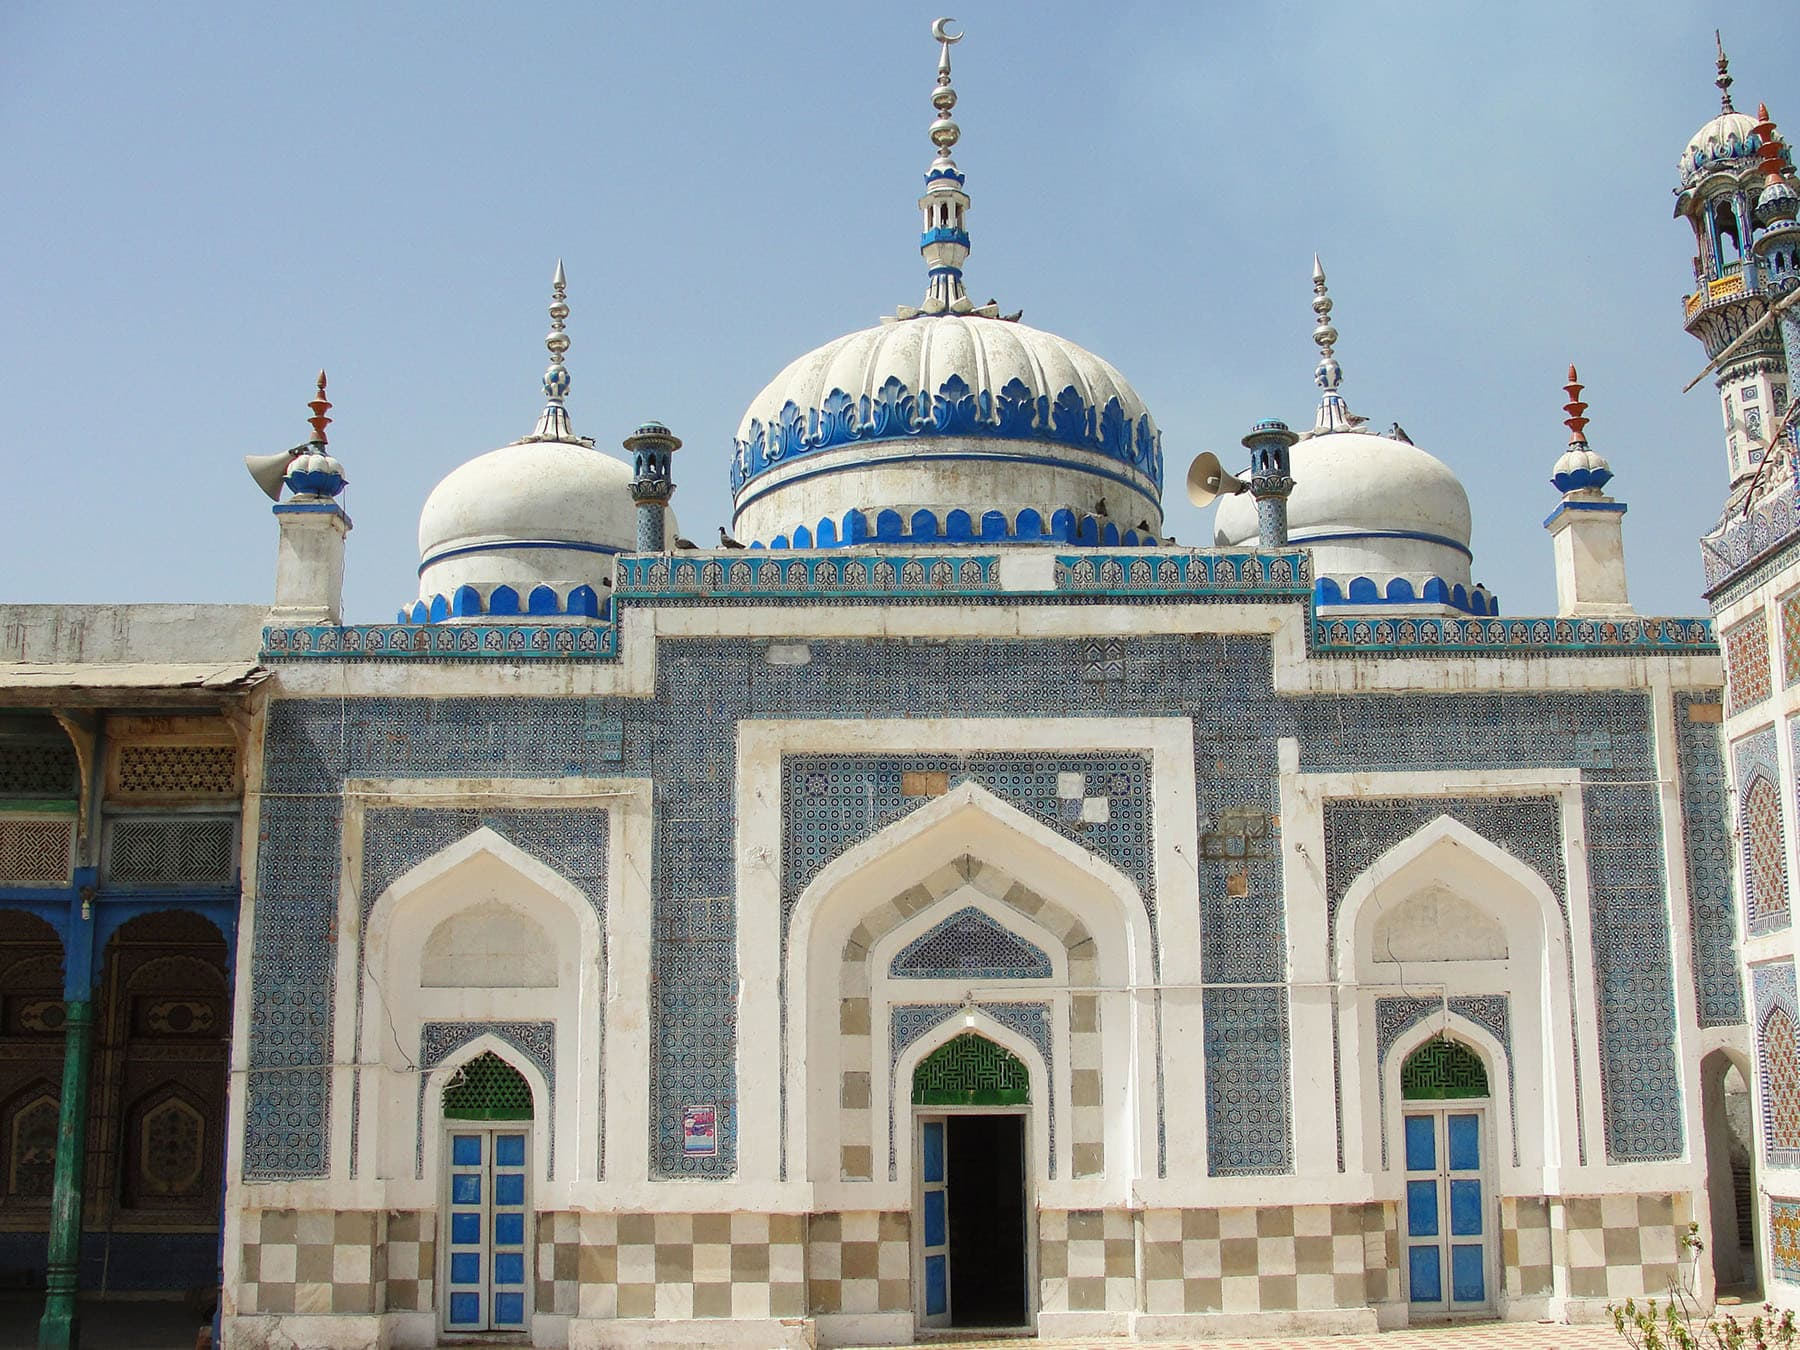 The three-domed mosque adjacent to the tomb.